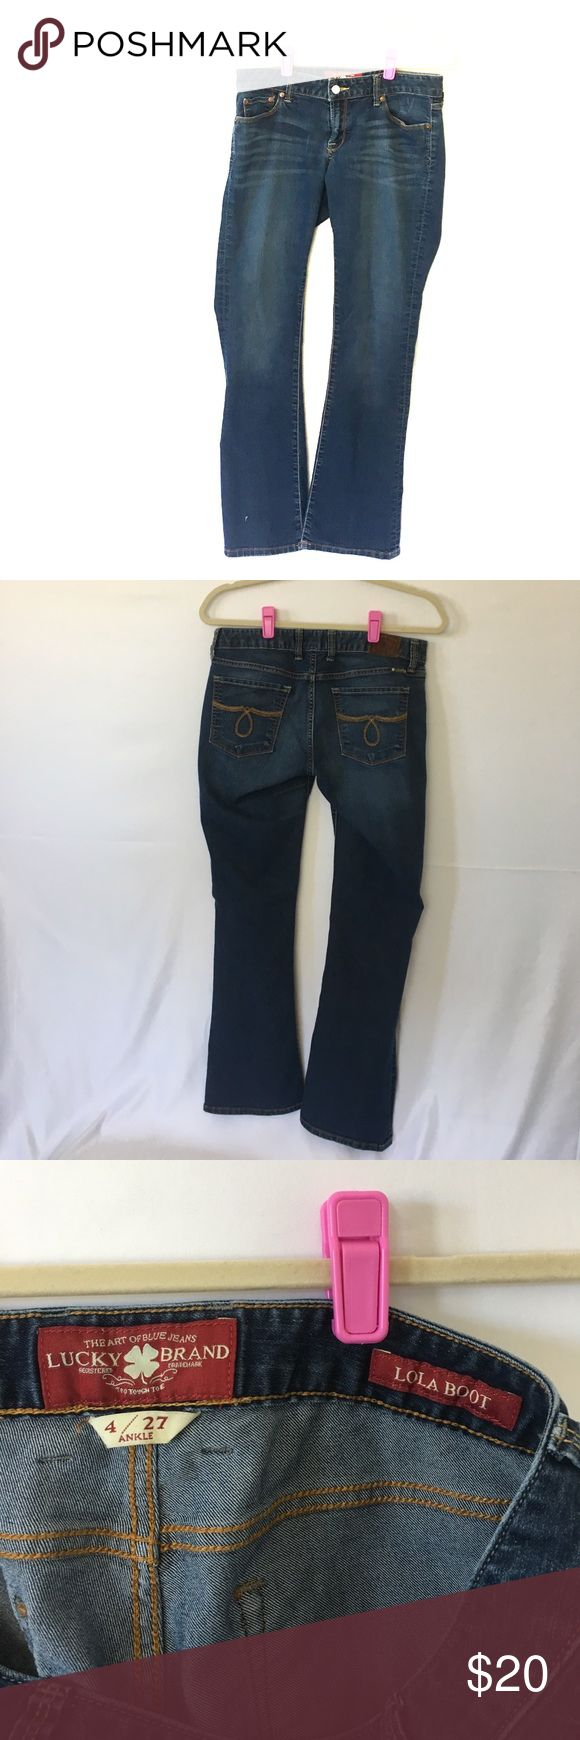 Lucky Jeans Lucky Jeans Lola Boot. Ankle 4/27. Great condition priced to sell Lucky Brand Jeans Boot Cut